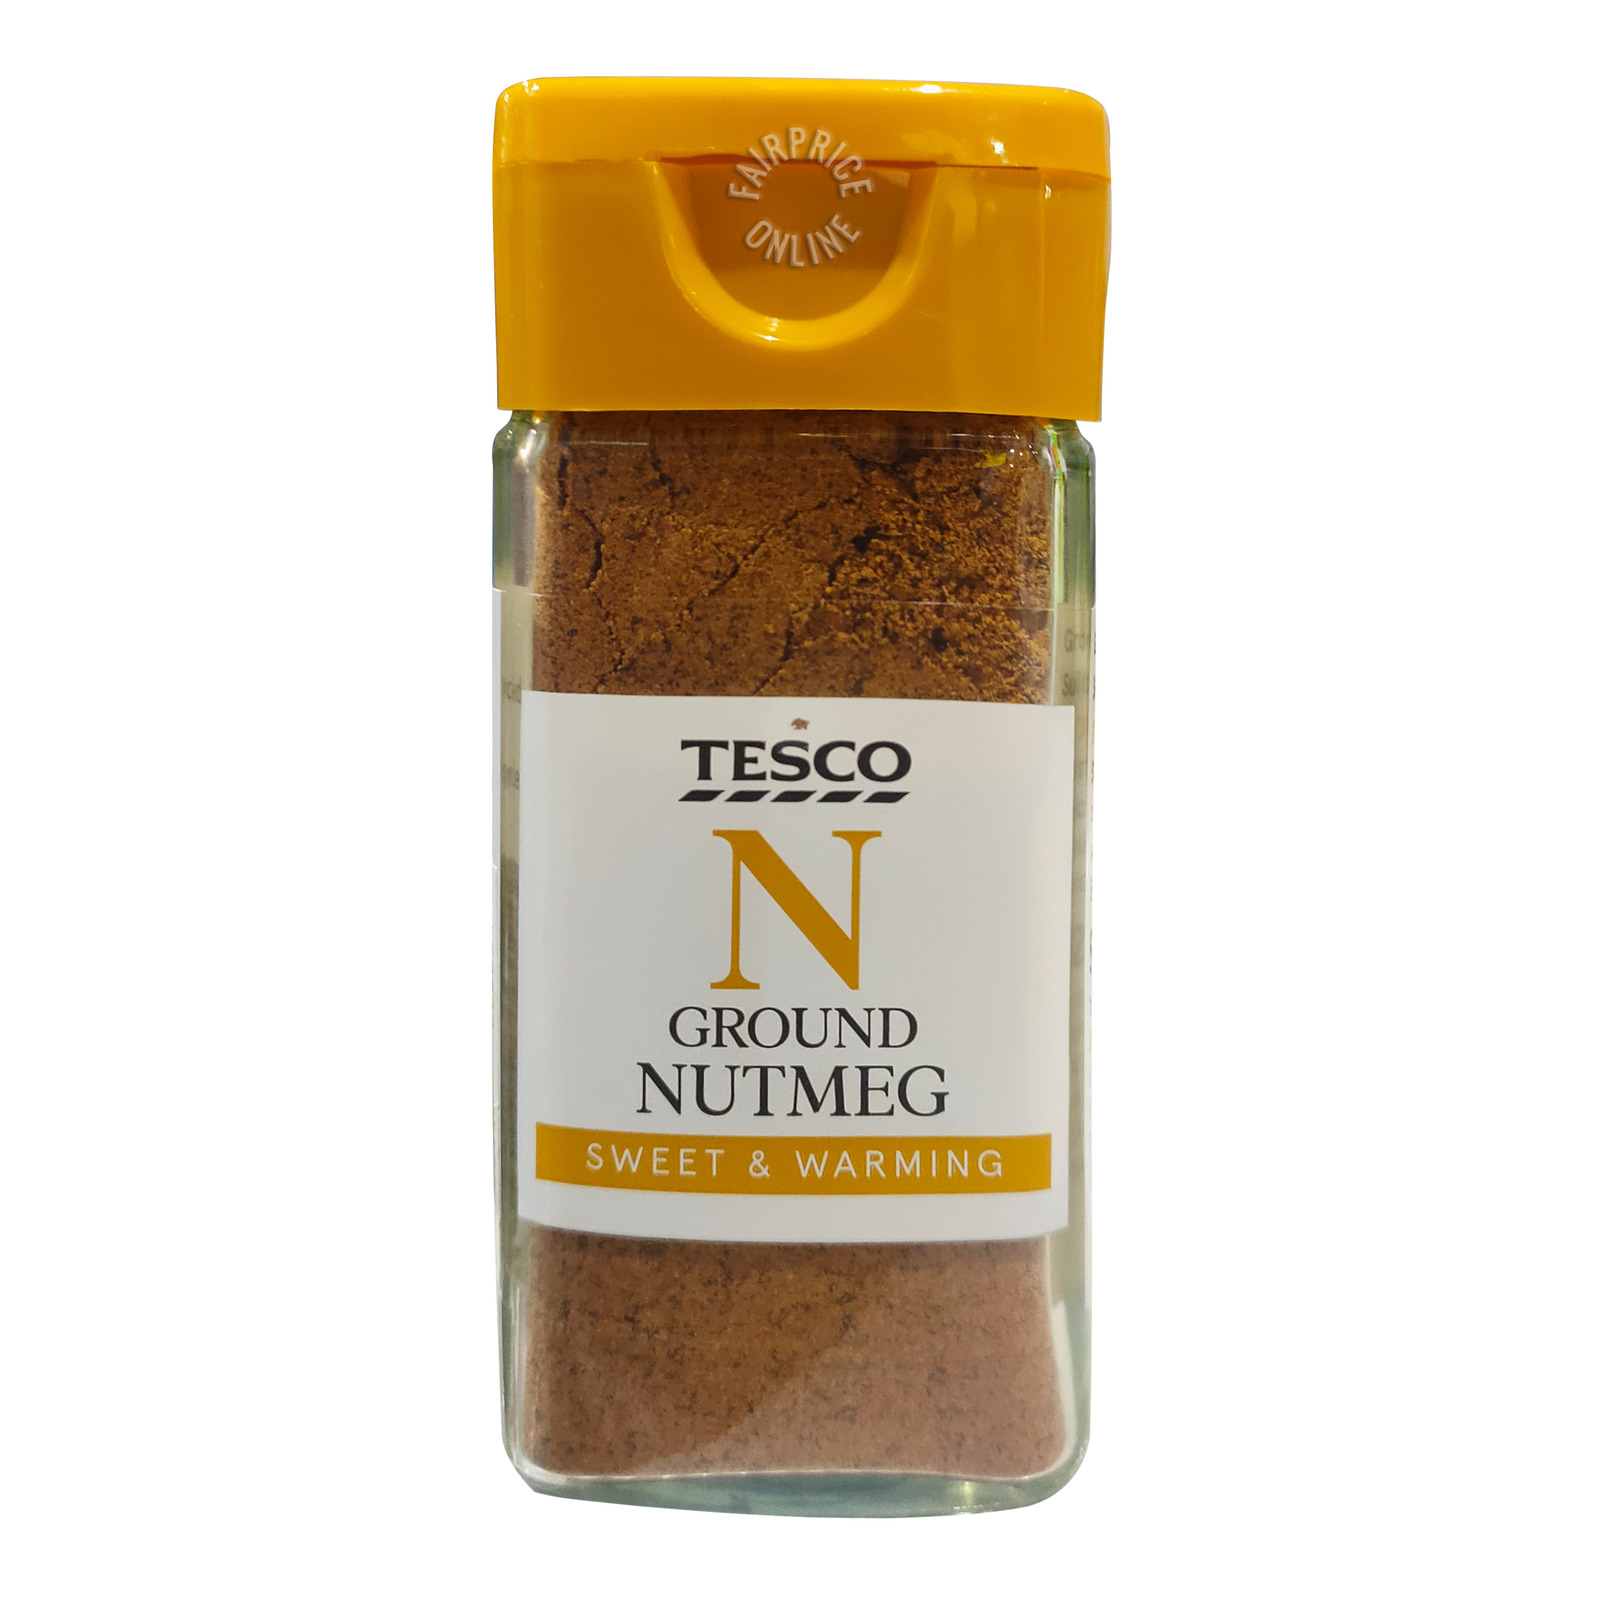 Tesco Ground Spice - Nutmeg